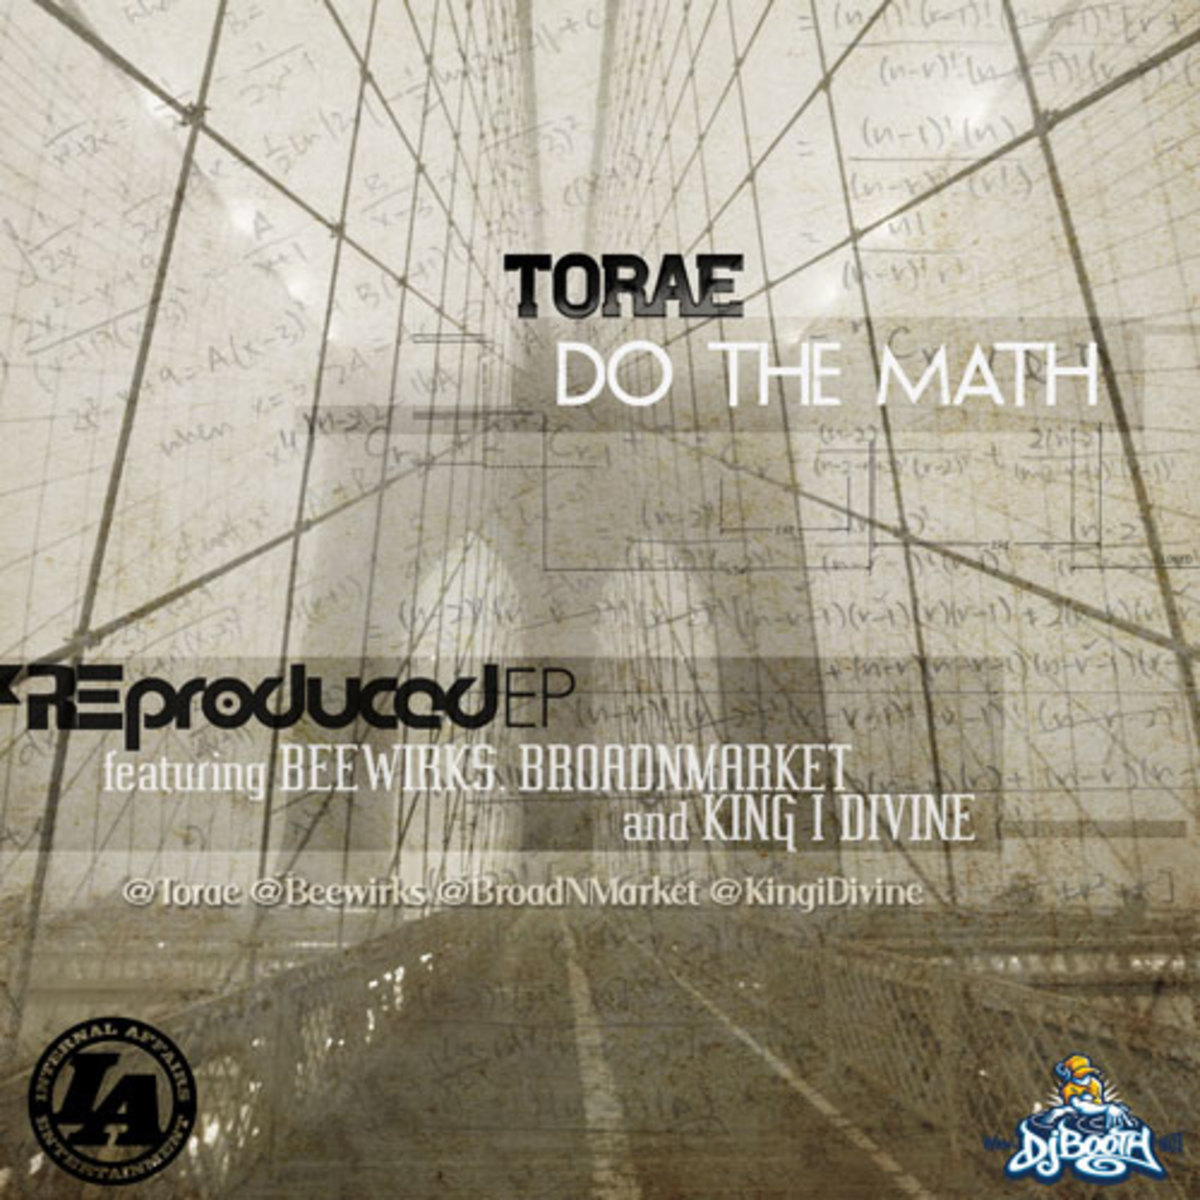 torae-reproduced.jpg